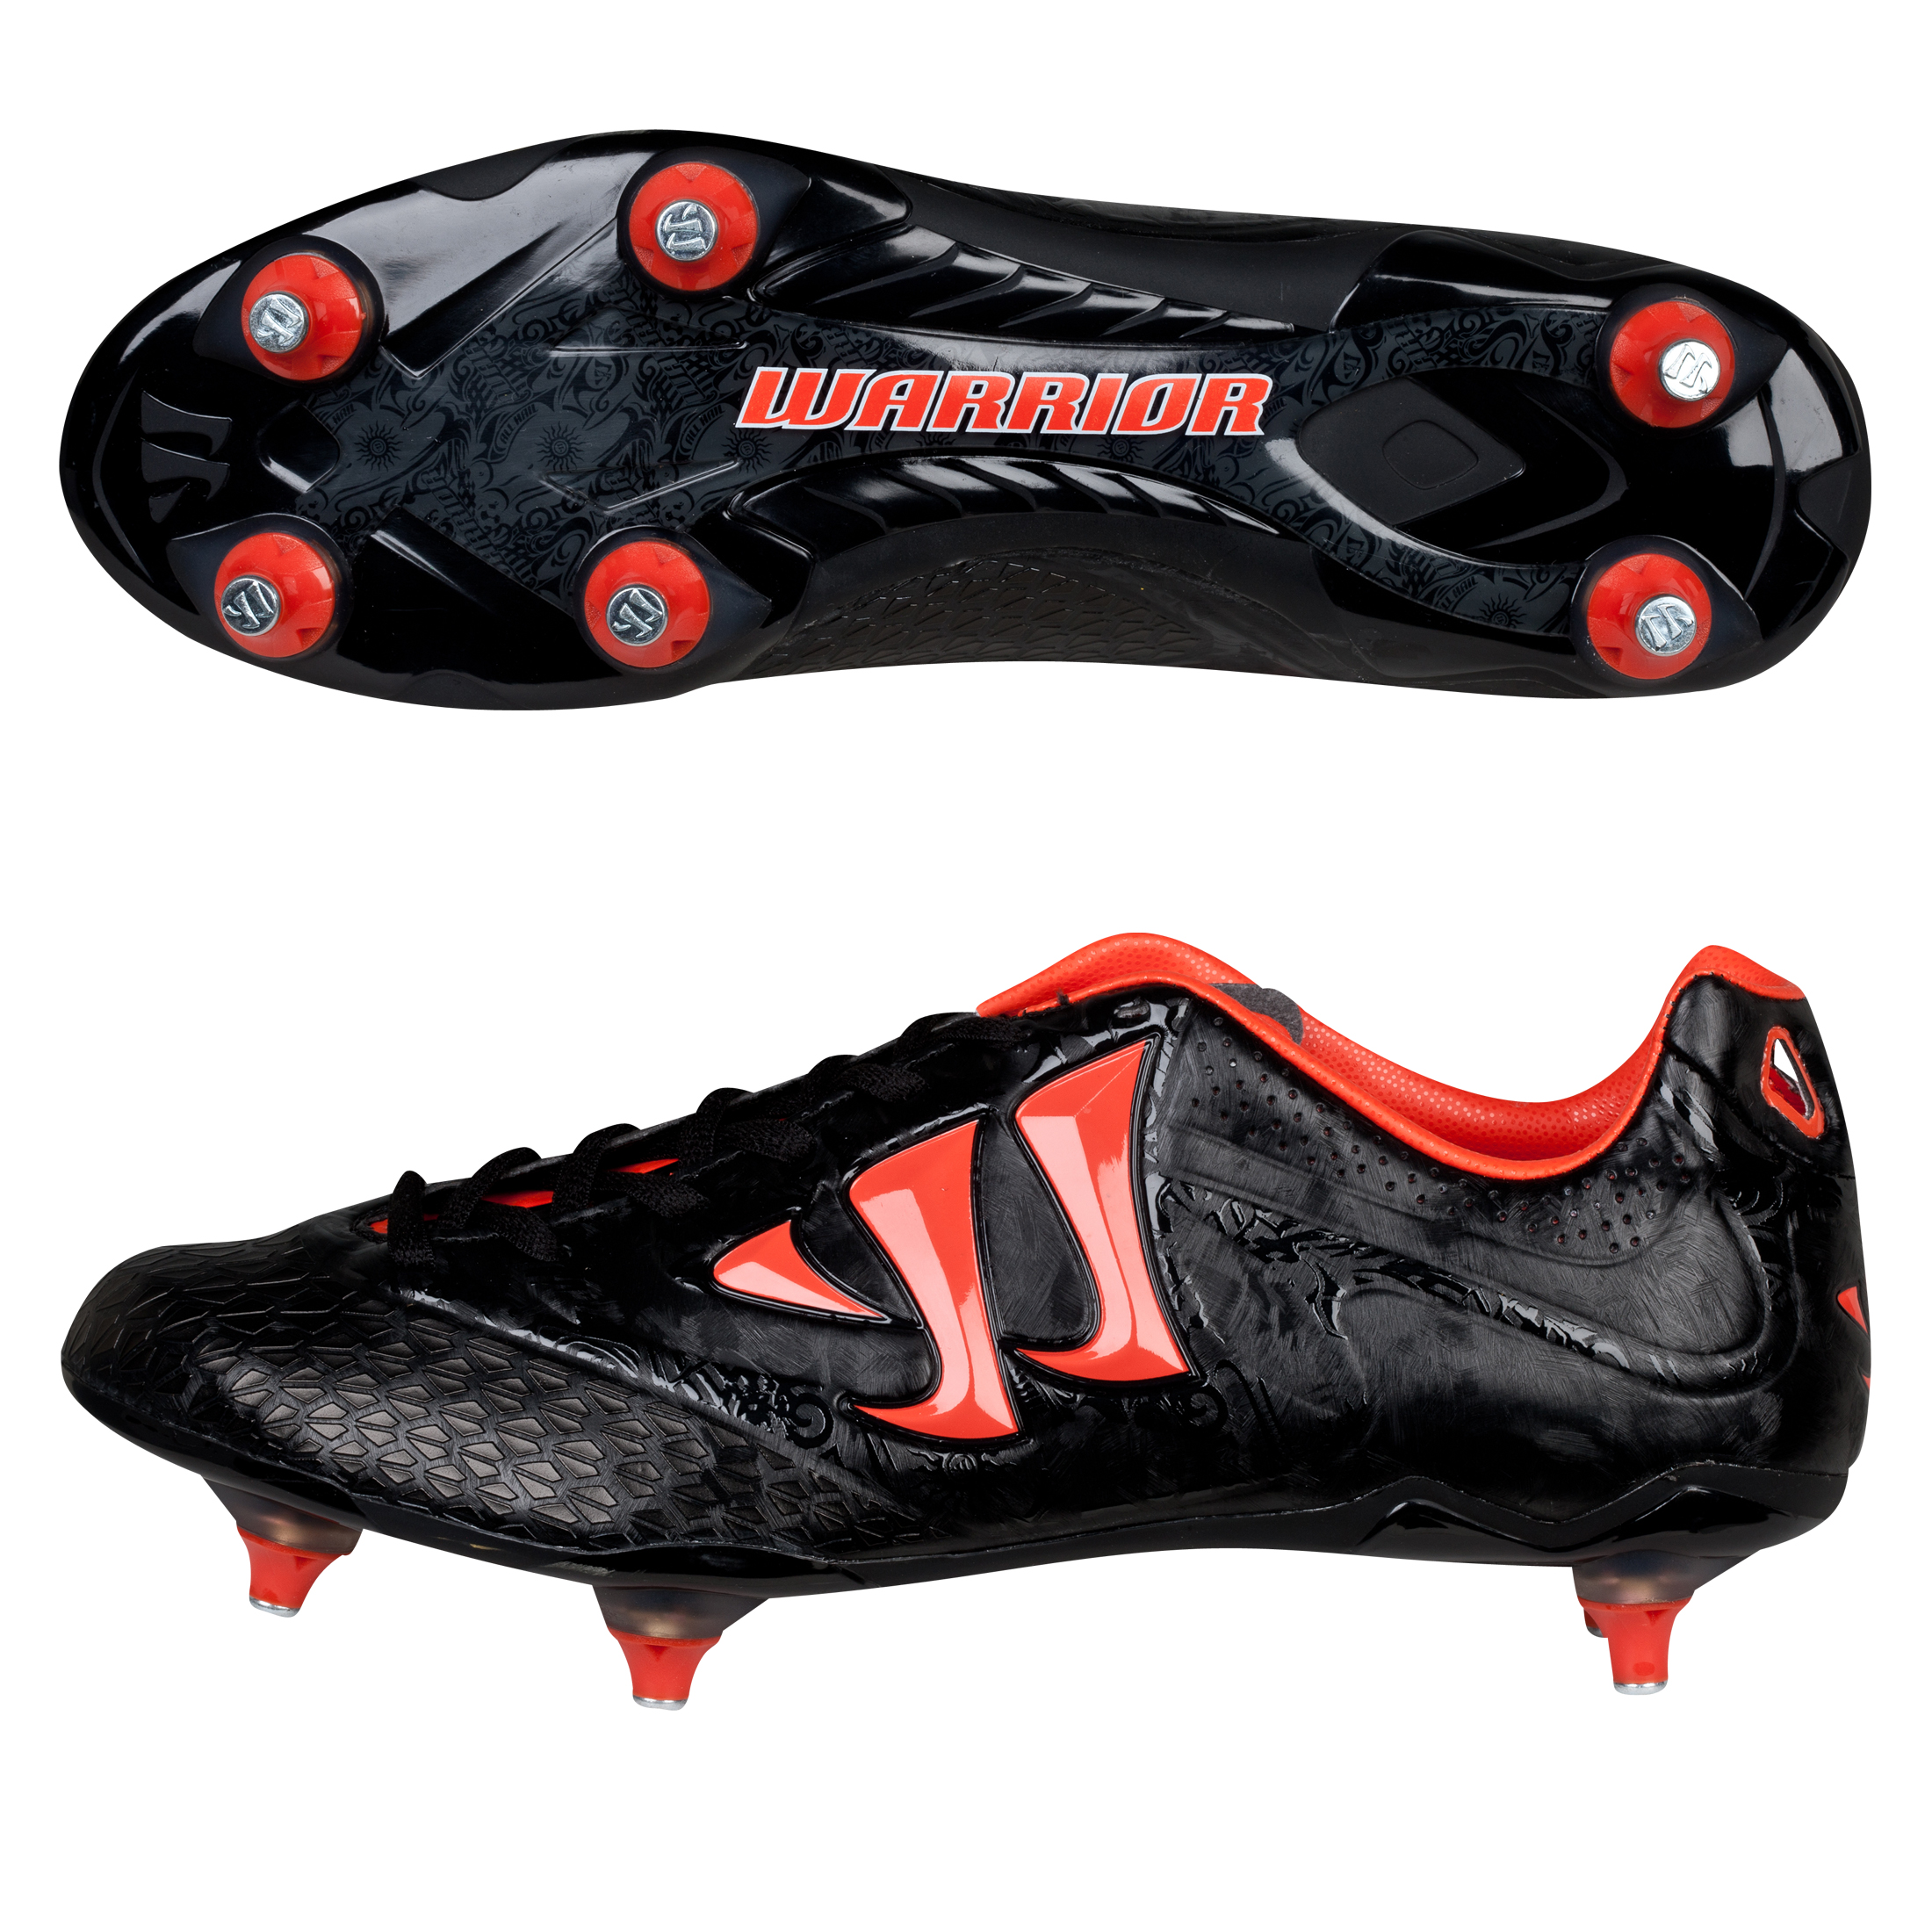 Warrior Sports Skreamer Combat Soft Ground Football Boots - Black/Spicy Orange - Kids